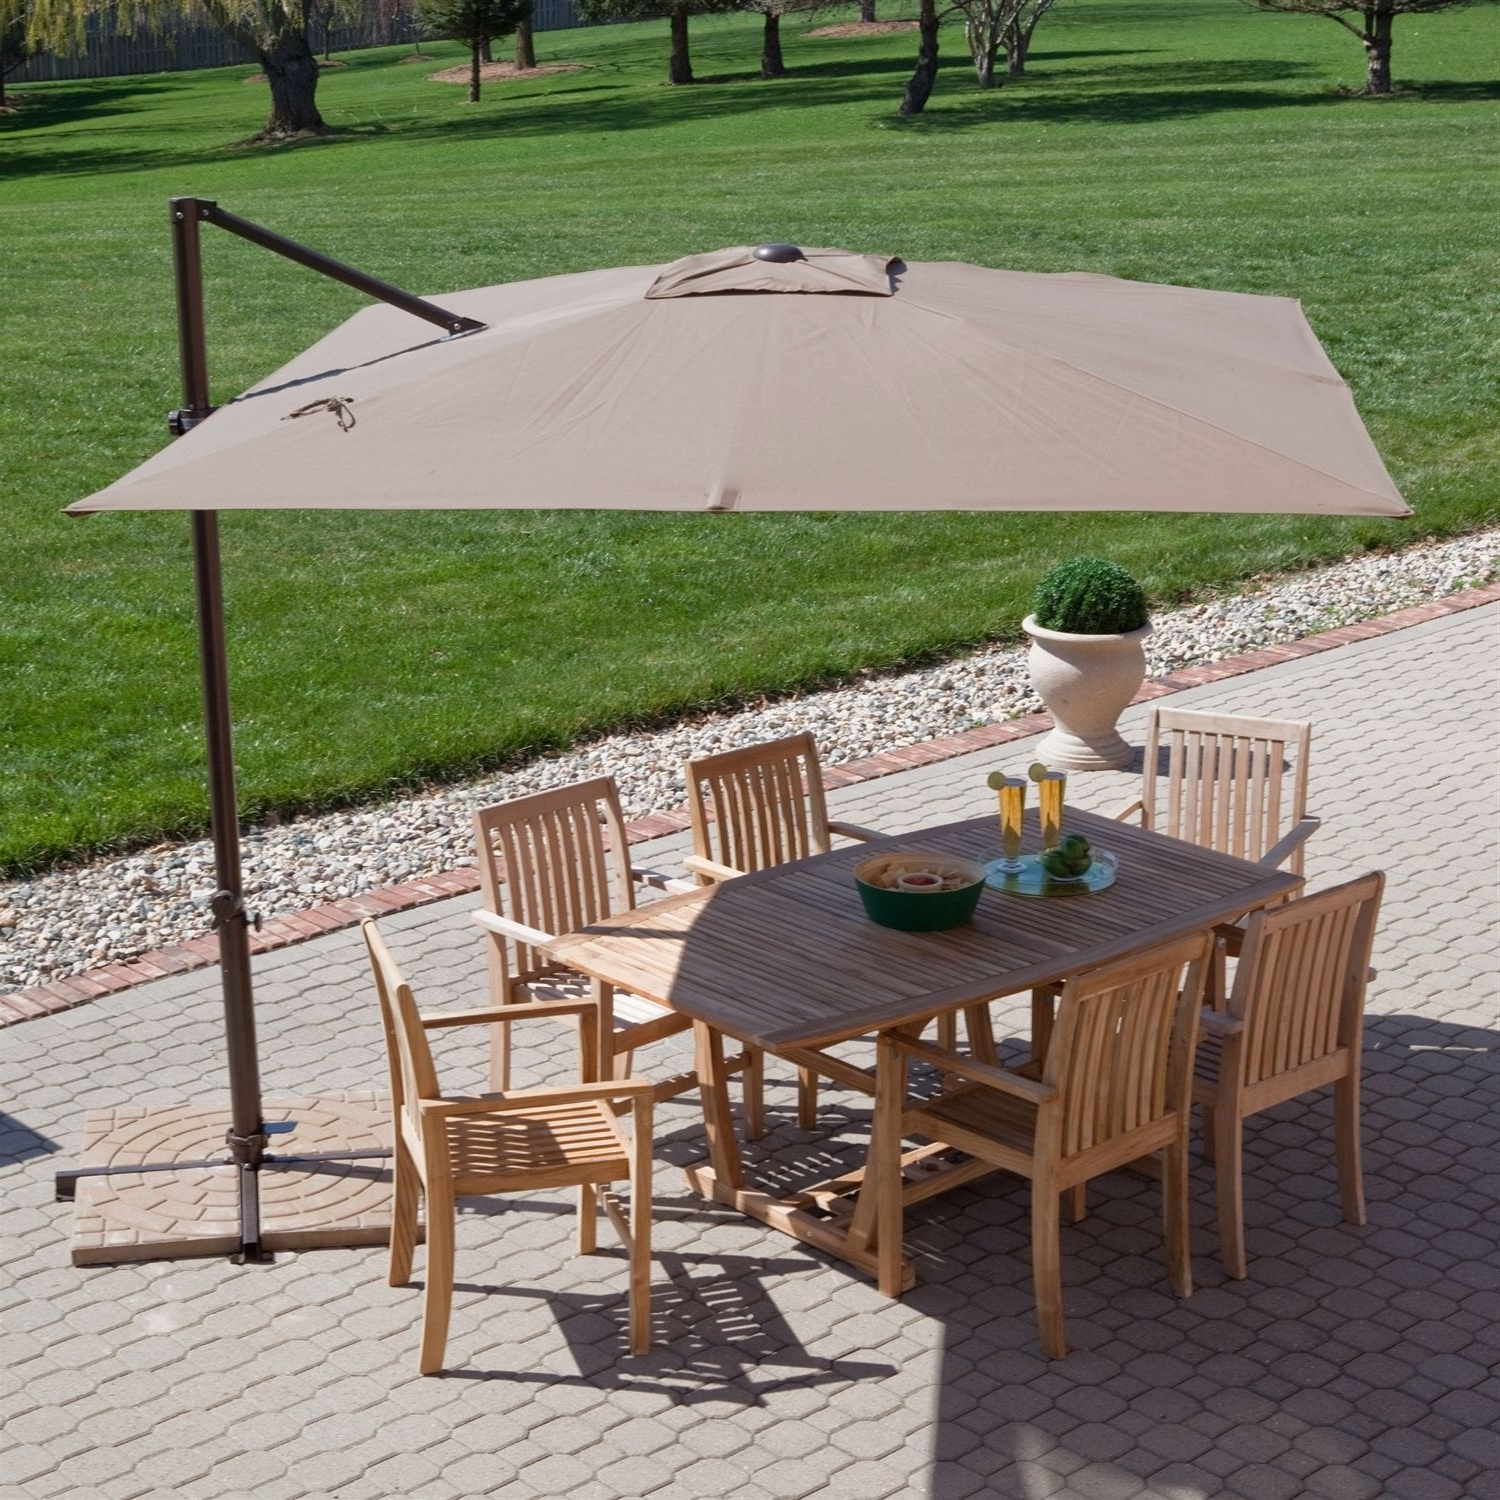 Cantilever Square Parasol We At Versatile Shading Solutions Supply Within Latest Patio Deck Umbrellas (View 11 of 20)